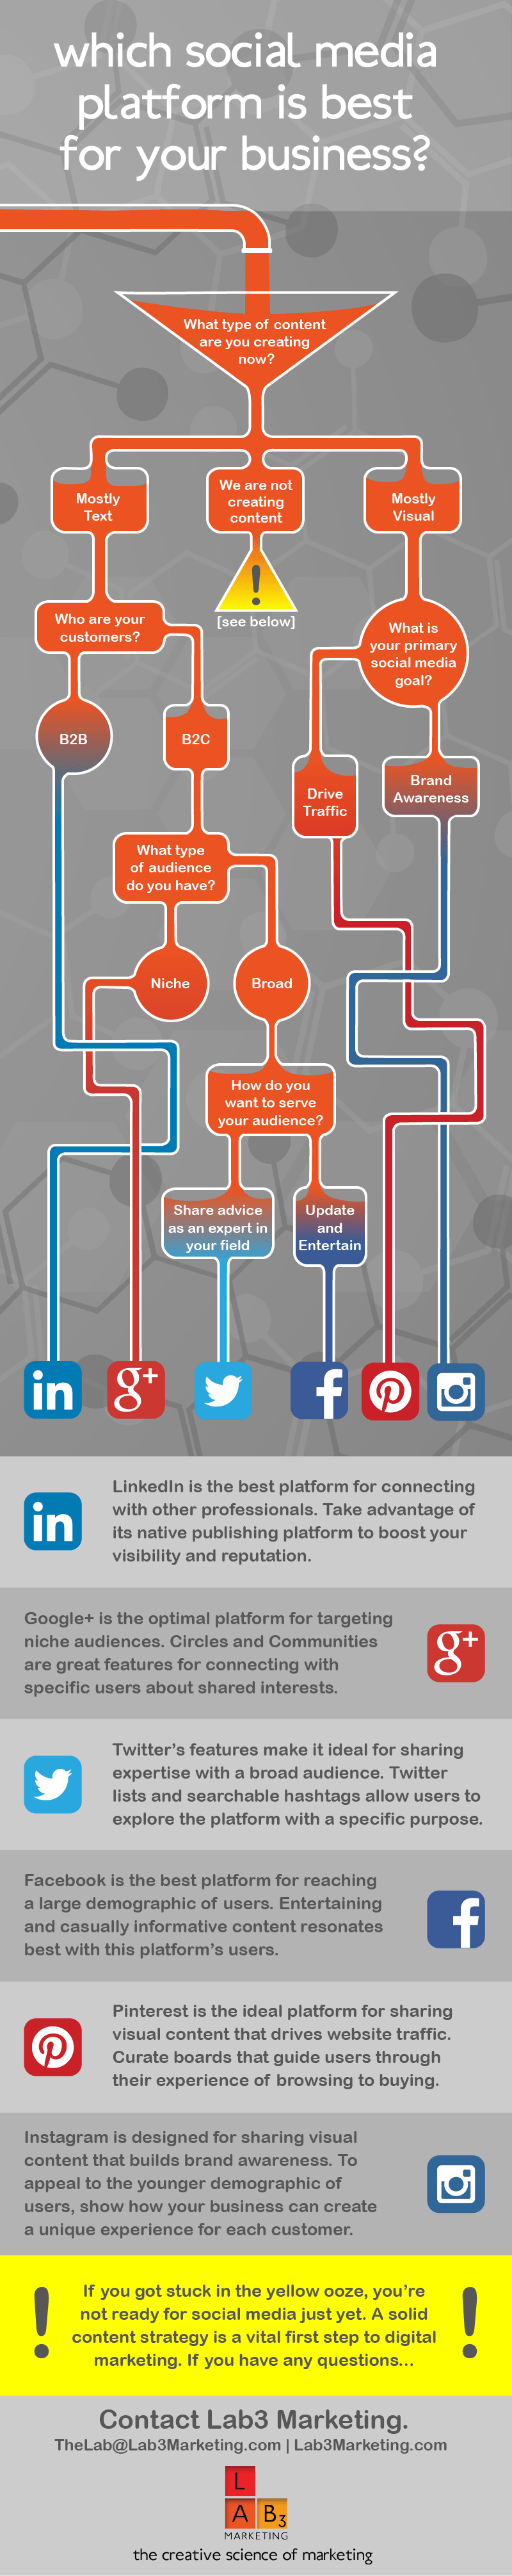 which-social-for-business-infographic-01